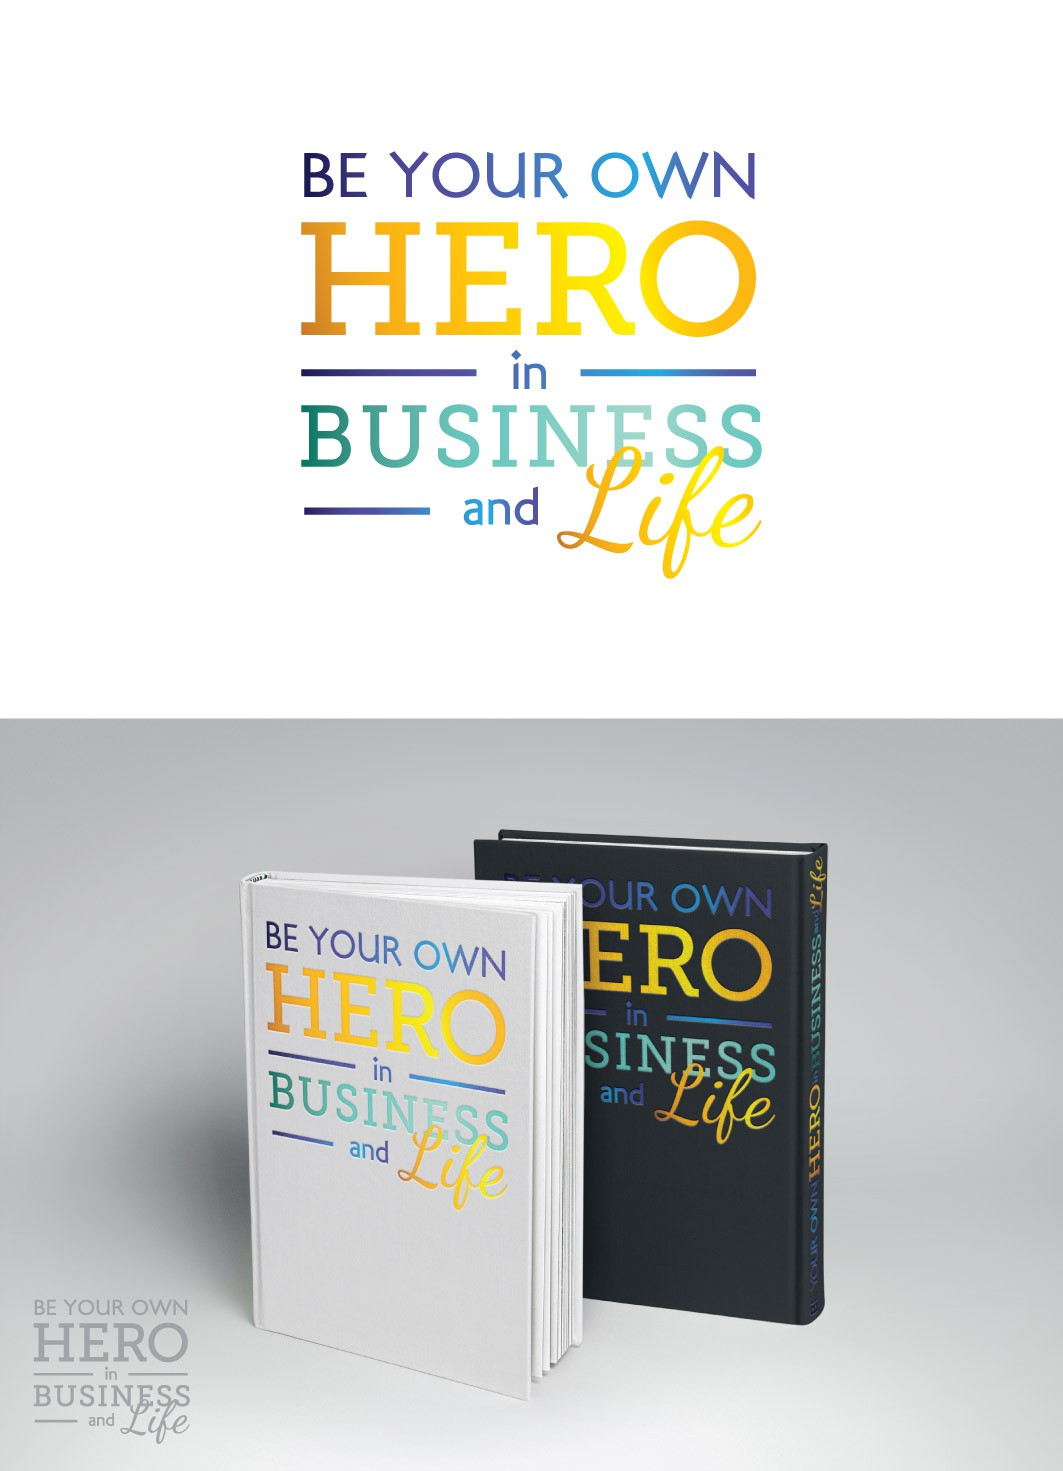 Create Winning Logo for Business Book & Podcast